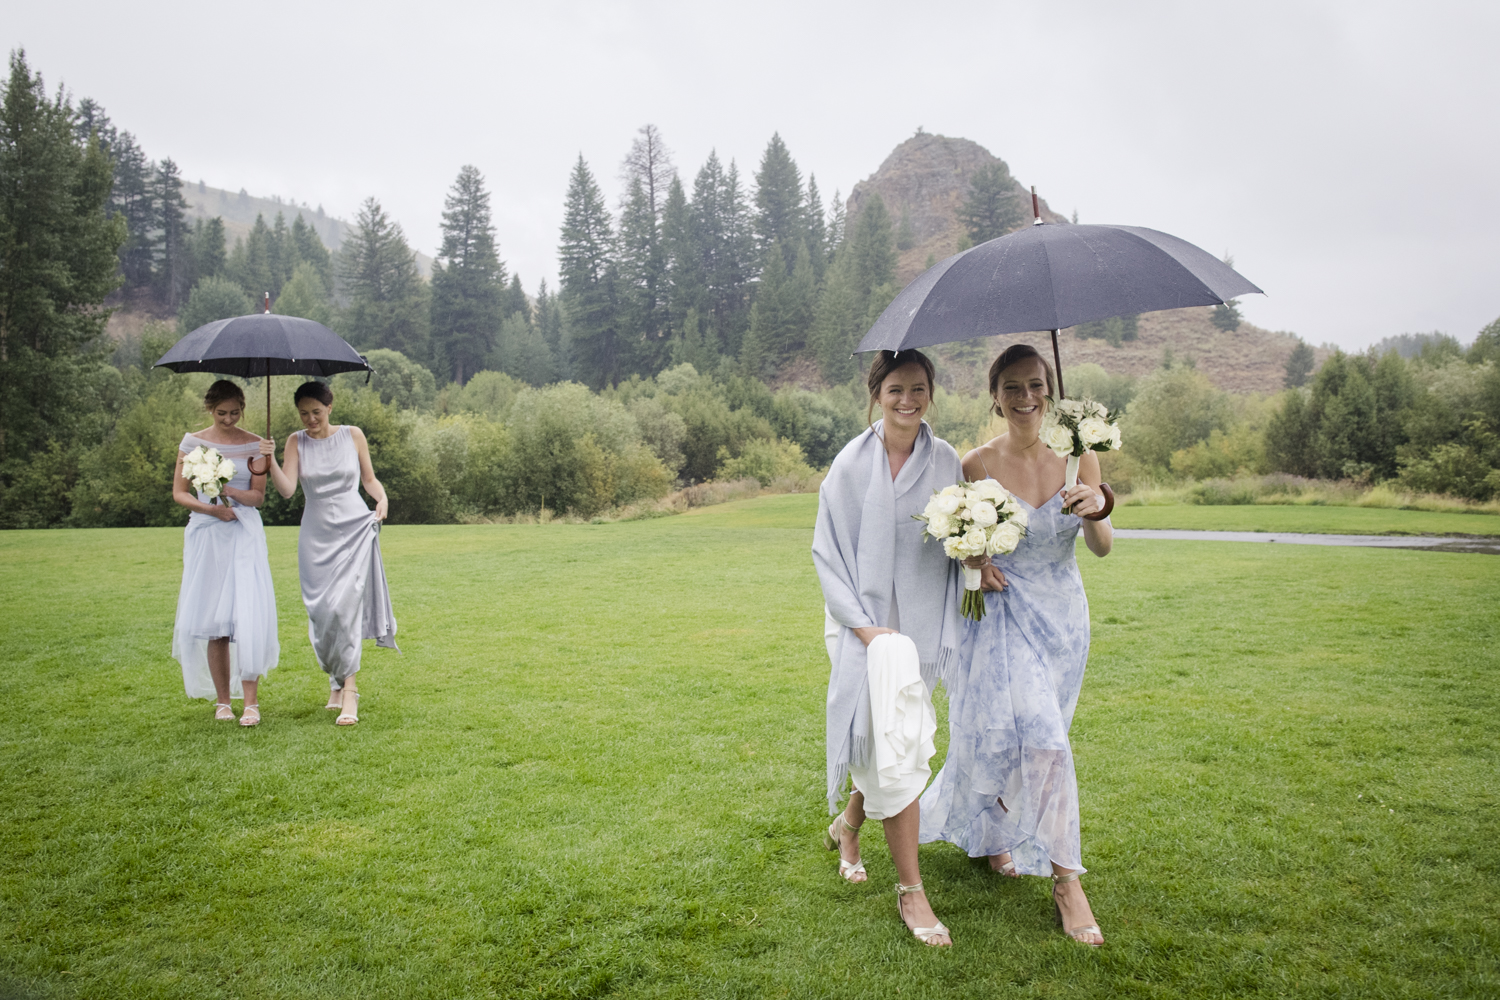 trailcreek_rainy_wedding-027.jpg